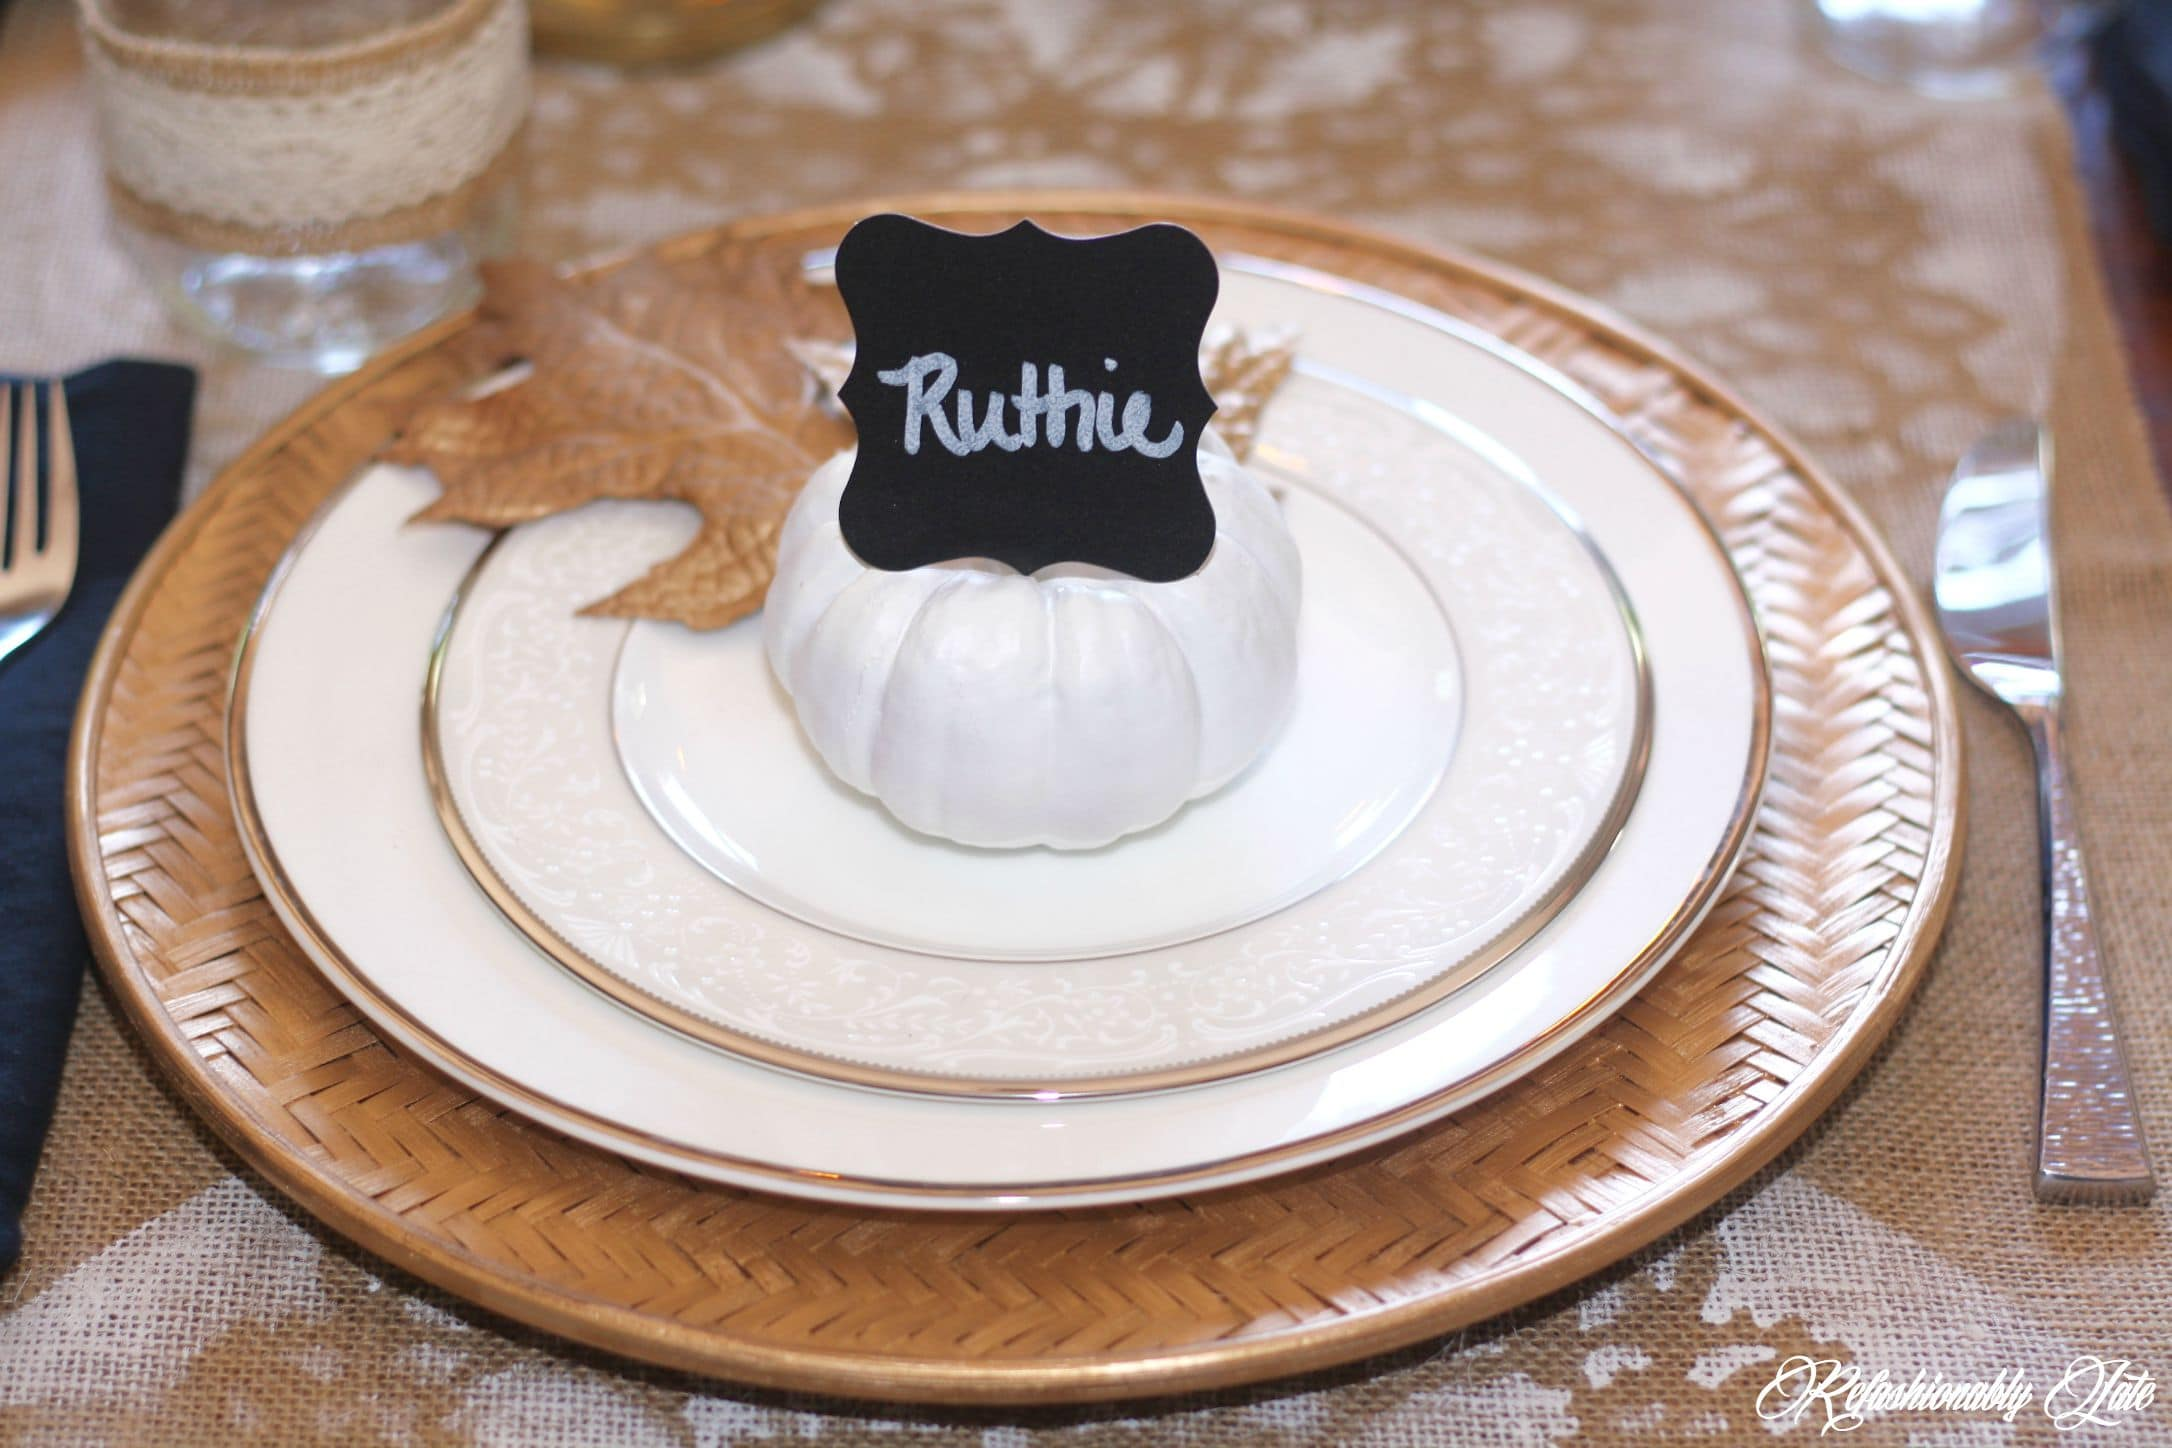 DIY Fall Place Cards & Pecan Pie Spice Cake - www.refashionablylate.com